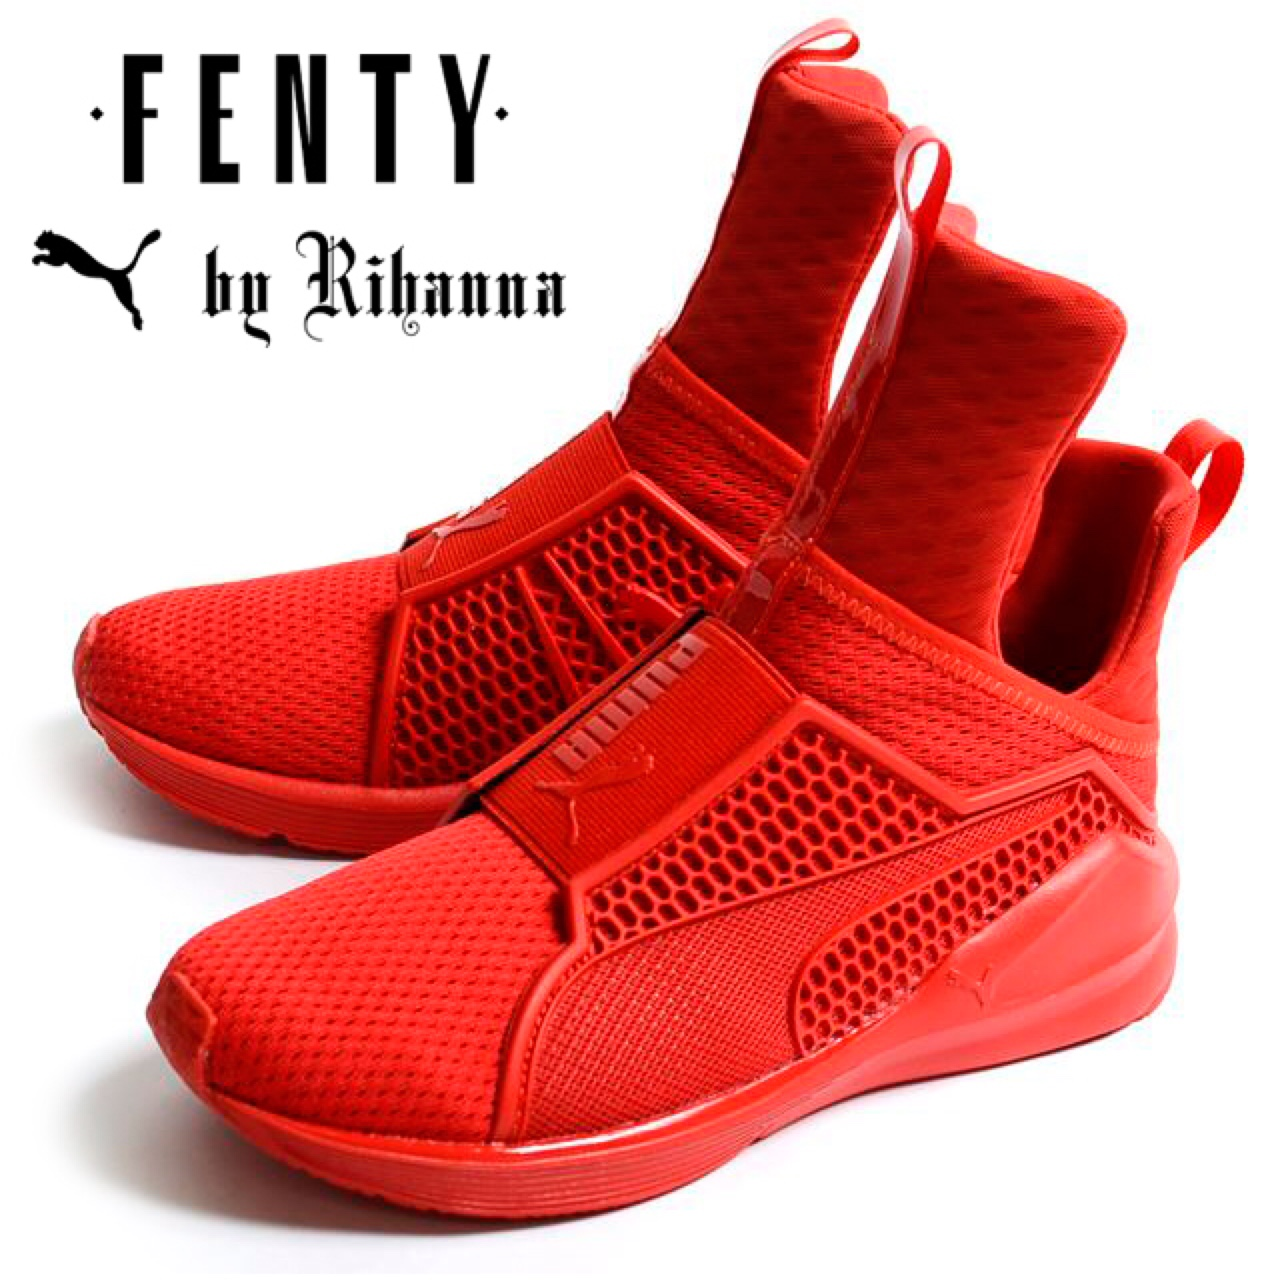 purchase cheap bc7b7 8ac87 Red Rihanna Fenty Puma Sneakers. Limited edition.... - Depop